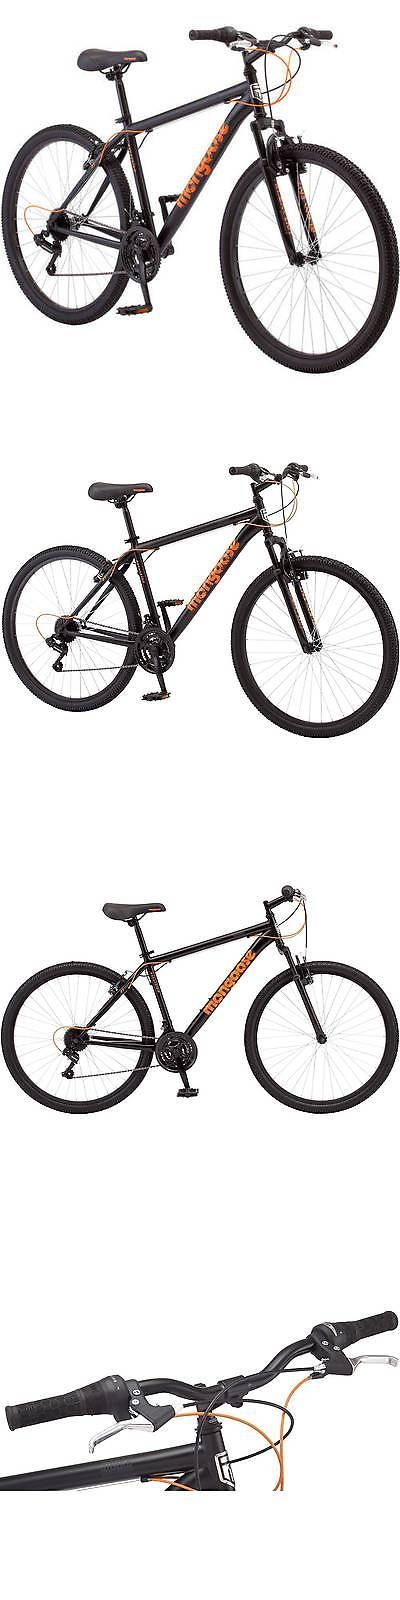 bicycles: 27.5 Mongoose Excursion Men S Mountain Bike -> BUY IT NOW ONLY: $146.23 on eBay!